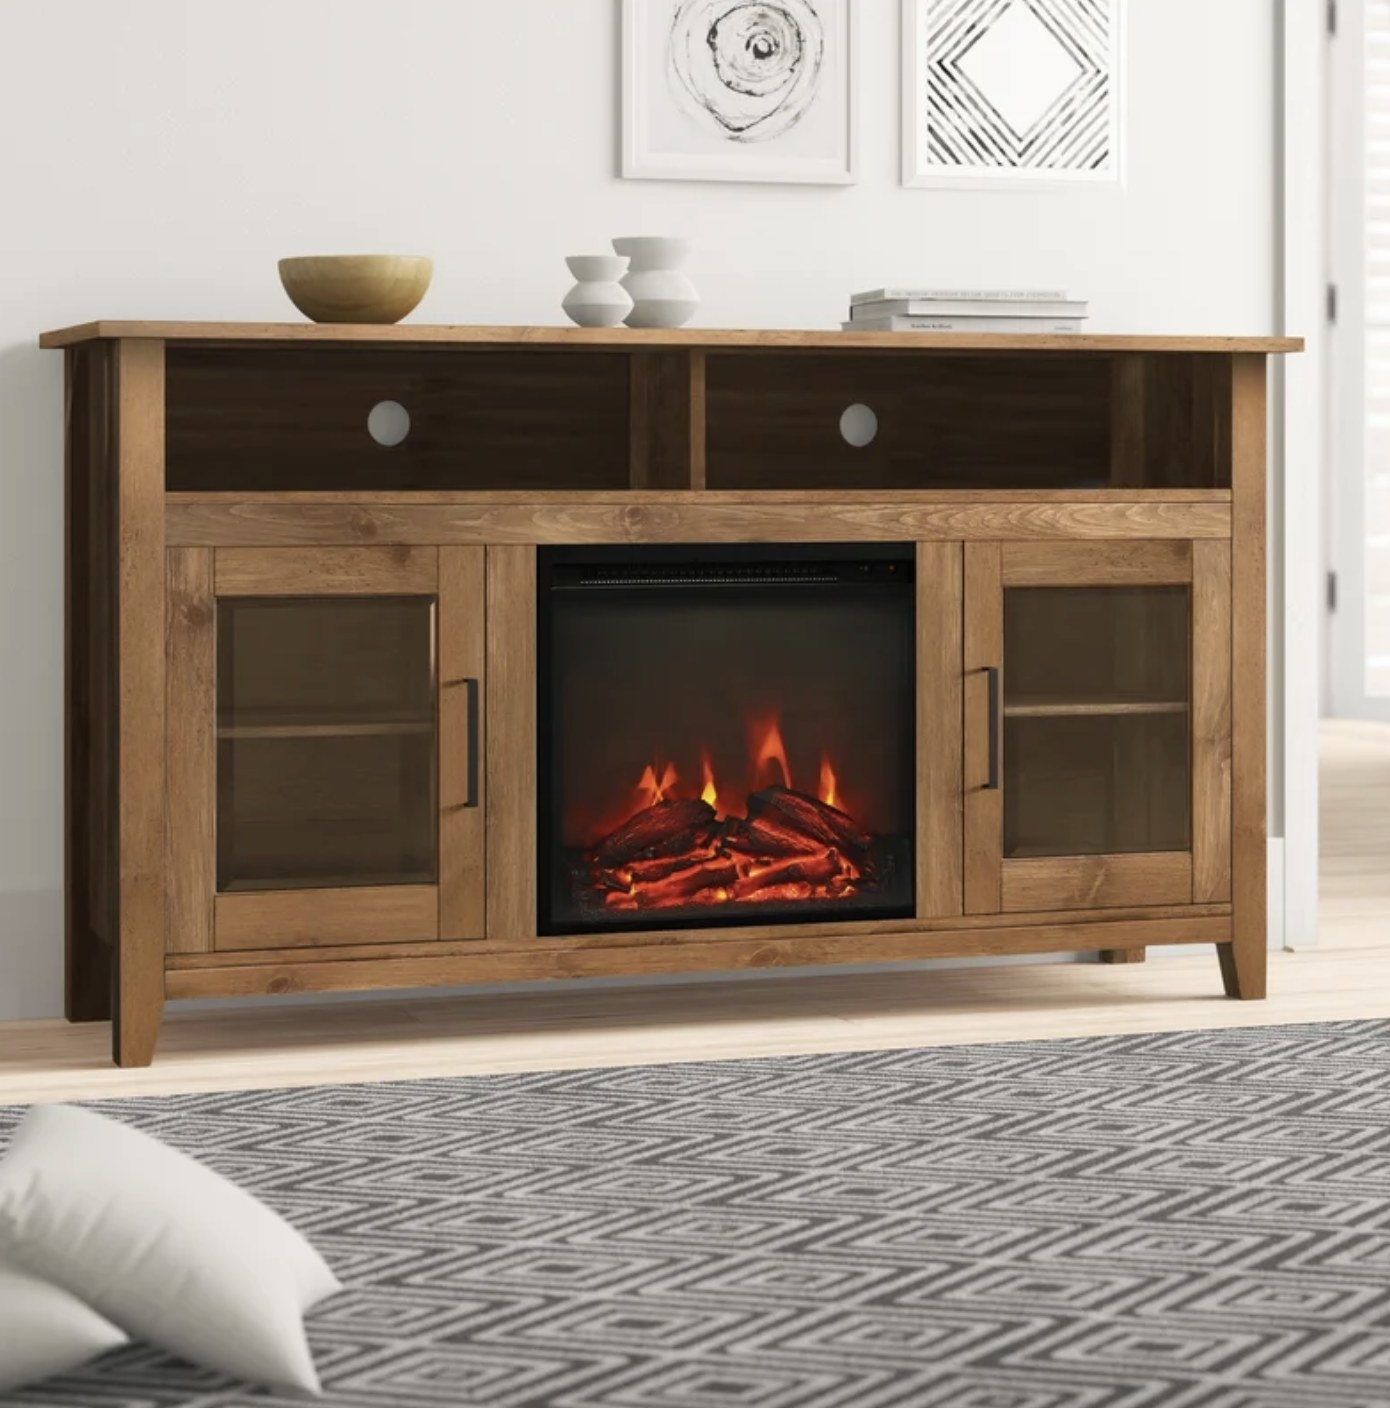 the tv stand in barnwood with the fireplace lit up